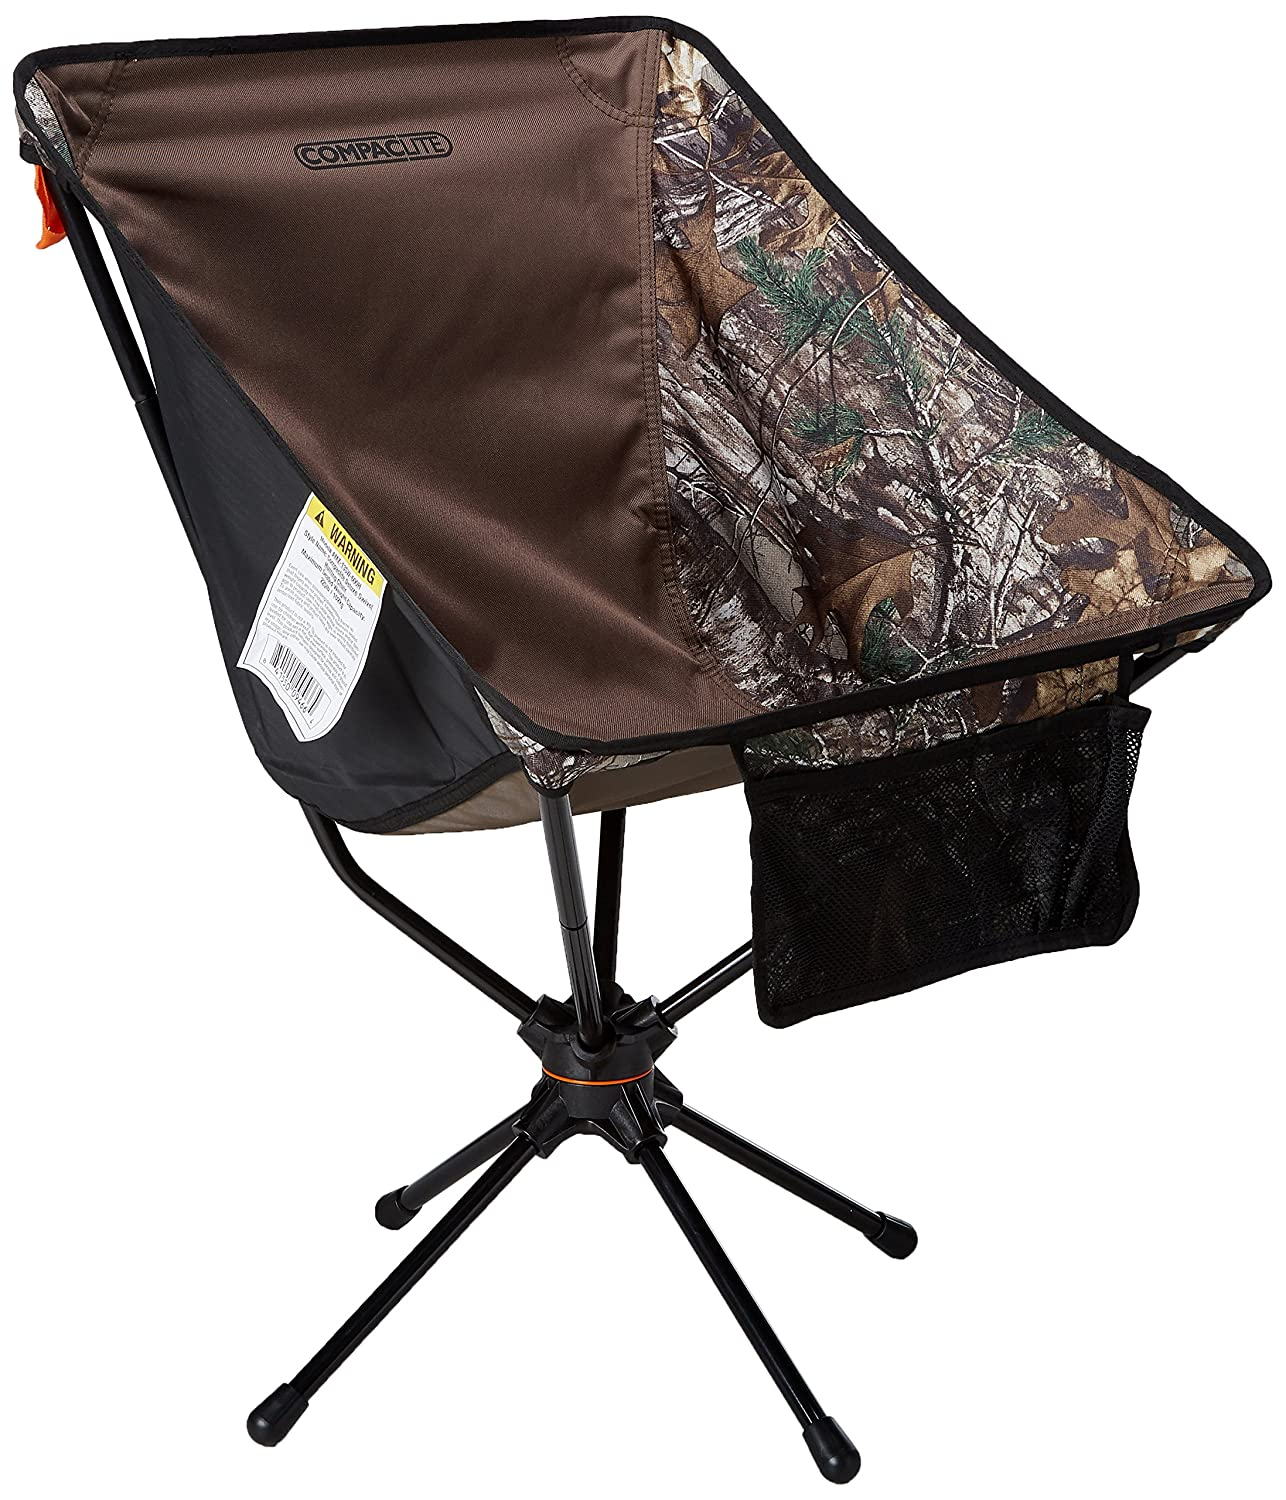 Compaclite Patented Deluxe 360 Swivel Steel Camping Portable Chair for Outdoor Camping Picnic Hiking Bicycling Fishing BBQ Beach Patio with Carry Bag, Camo